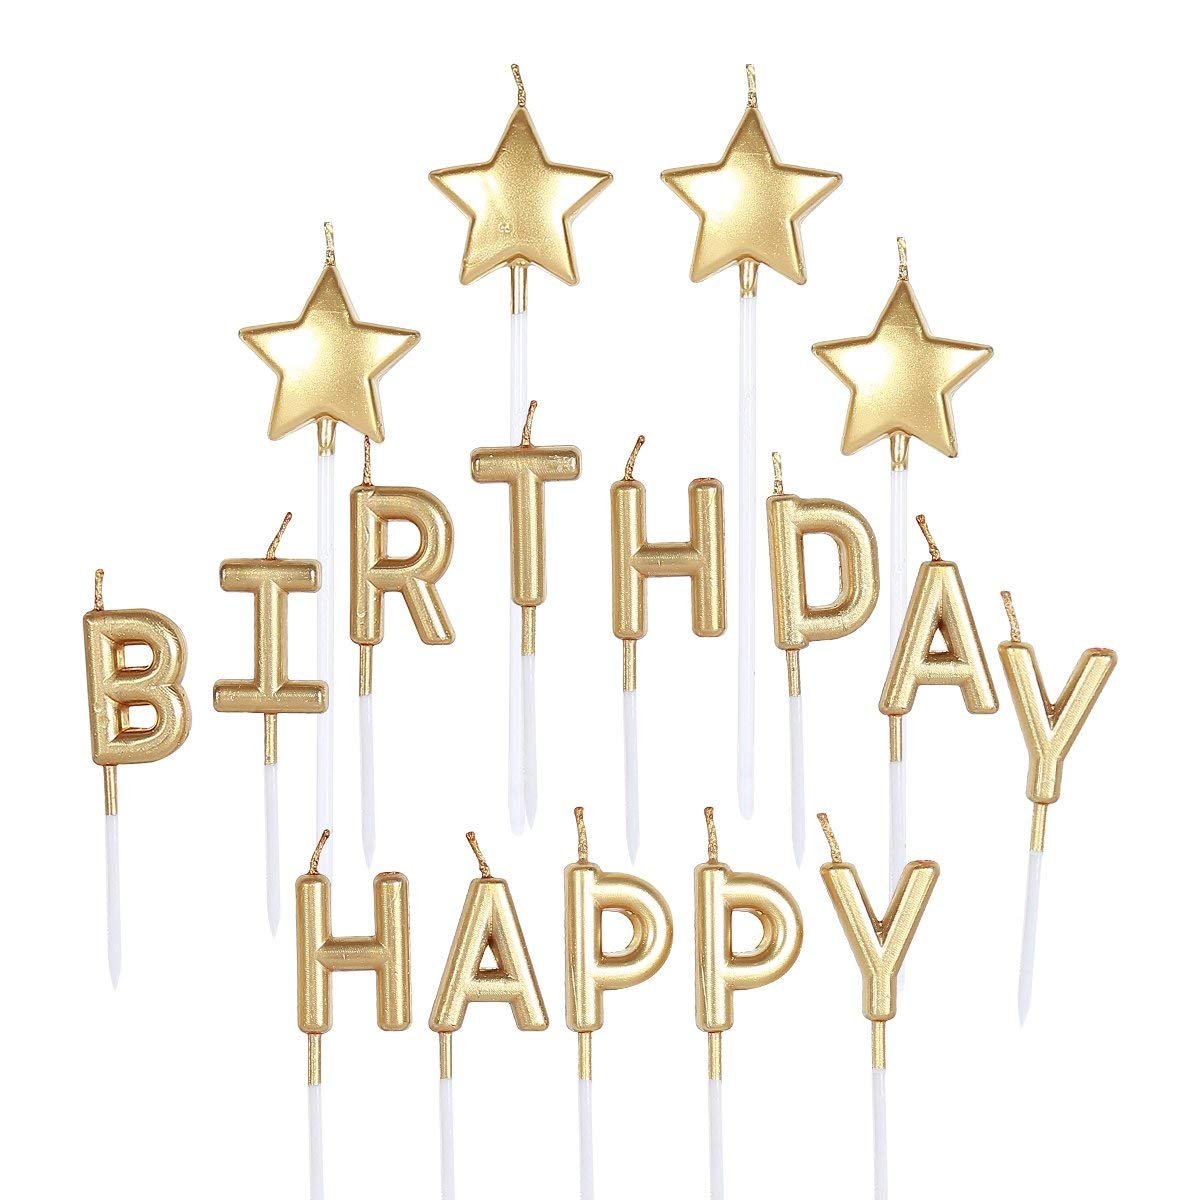 PinkBlume Gold Happy Birthday Candle,Star Cake Toppers Party Decorations- Birthday Letters Candles, Metallic Happy Birthday Cake Candles for Adults/Kids